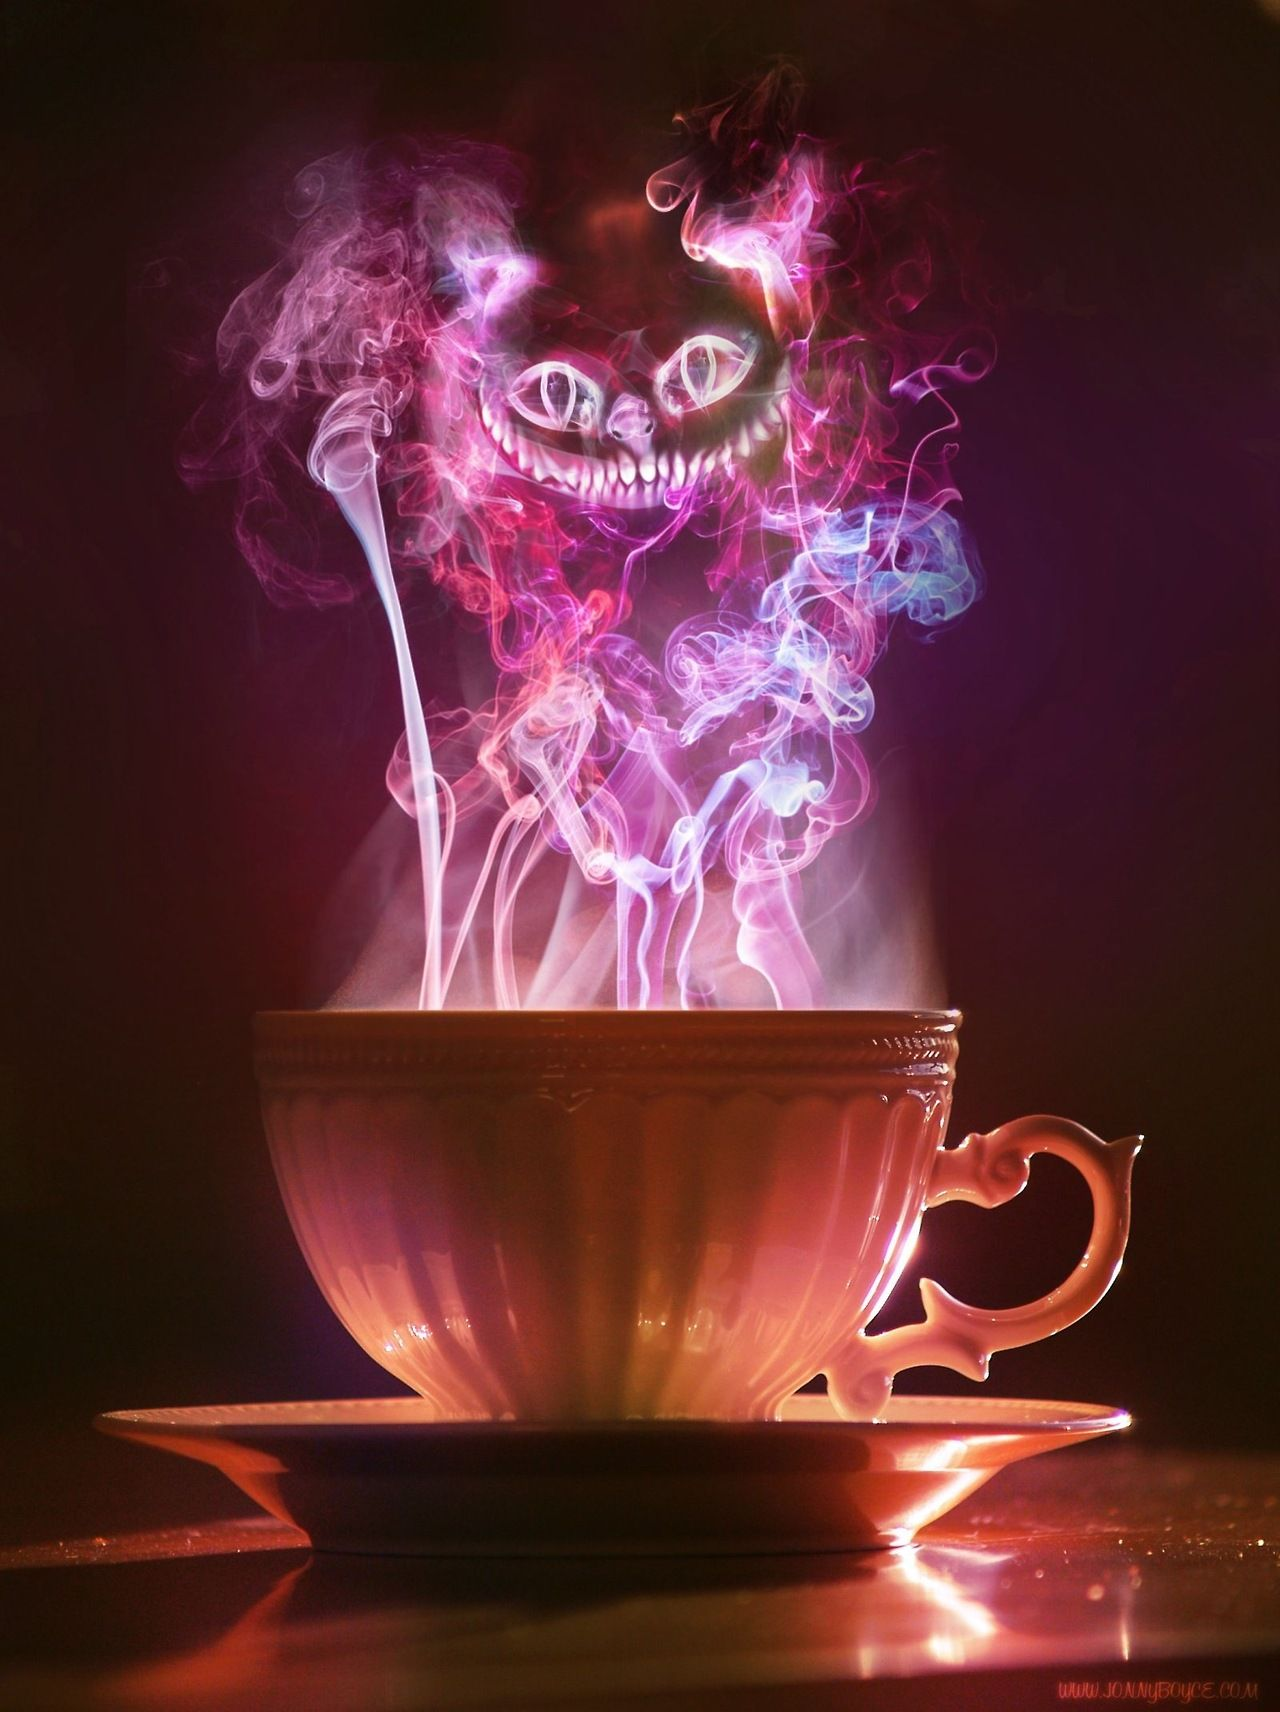 Cheshire Cat in a teacup